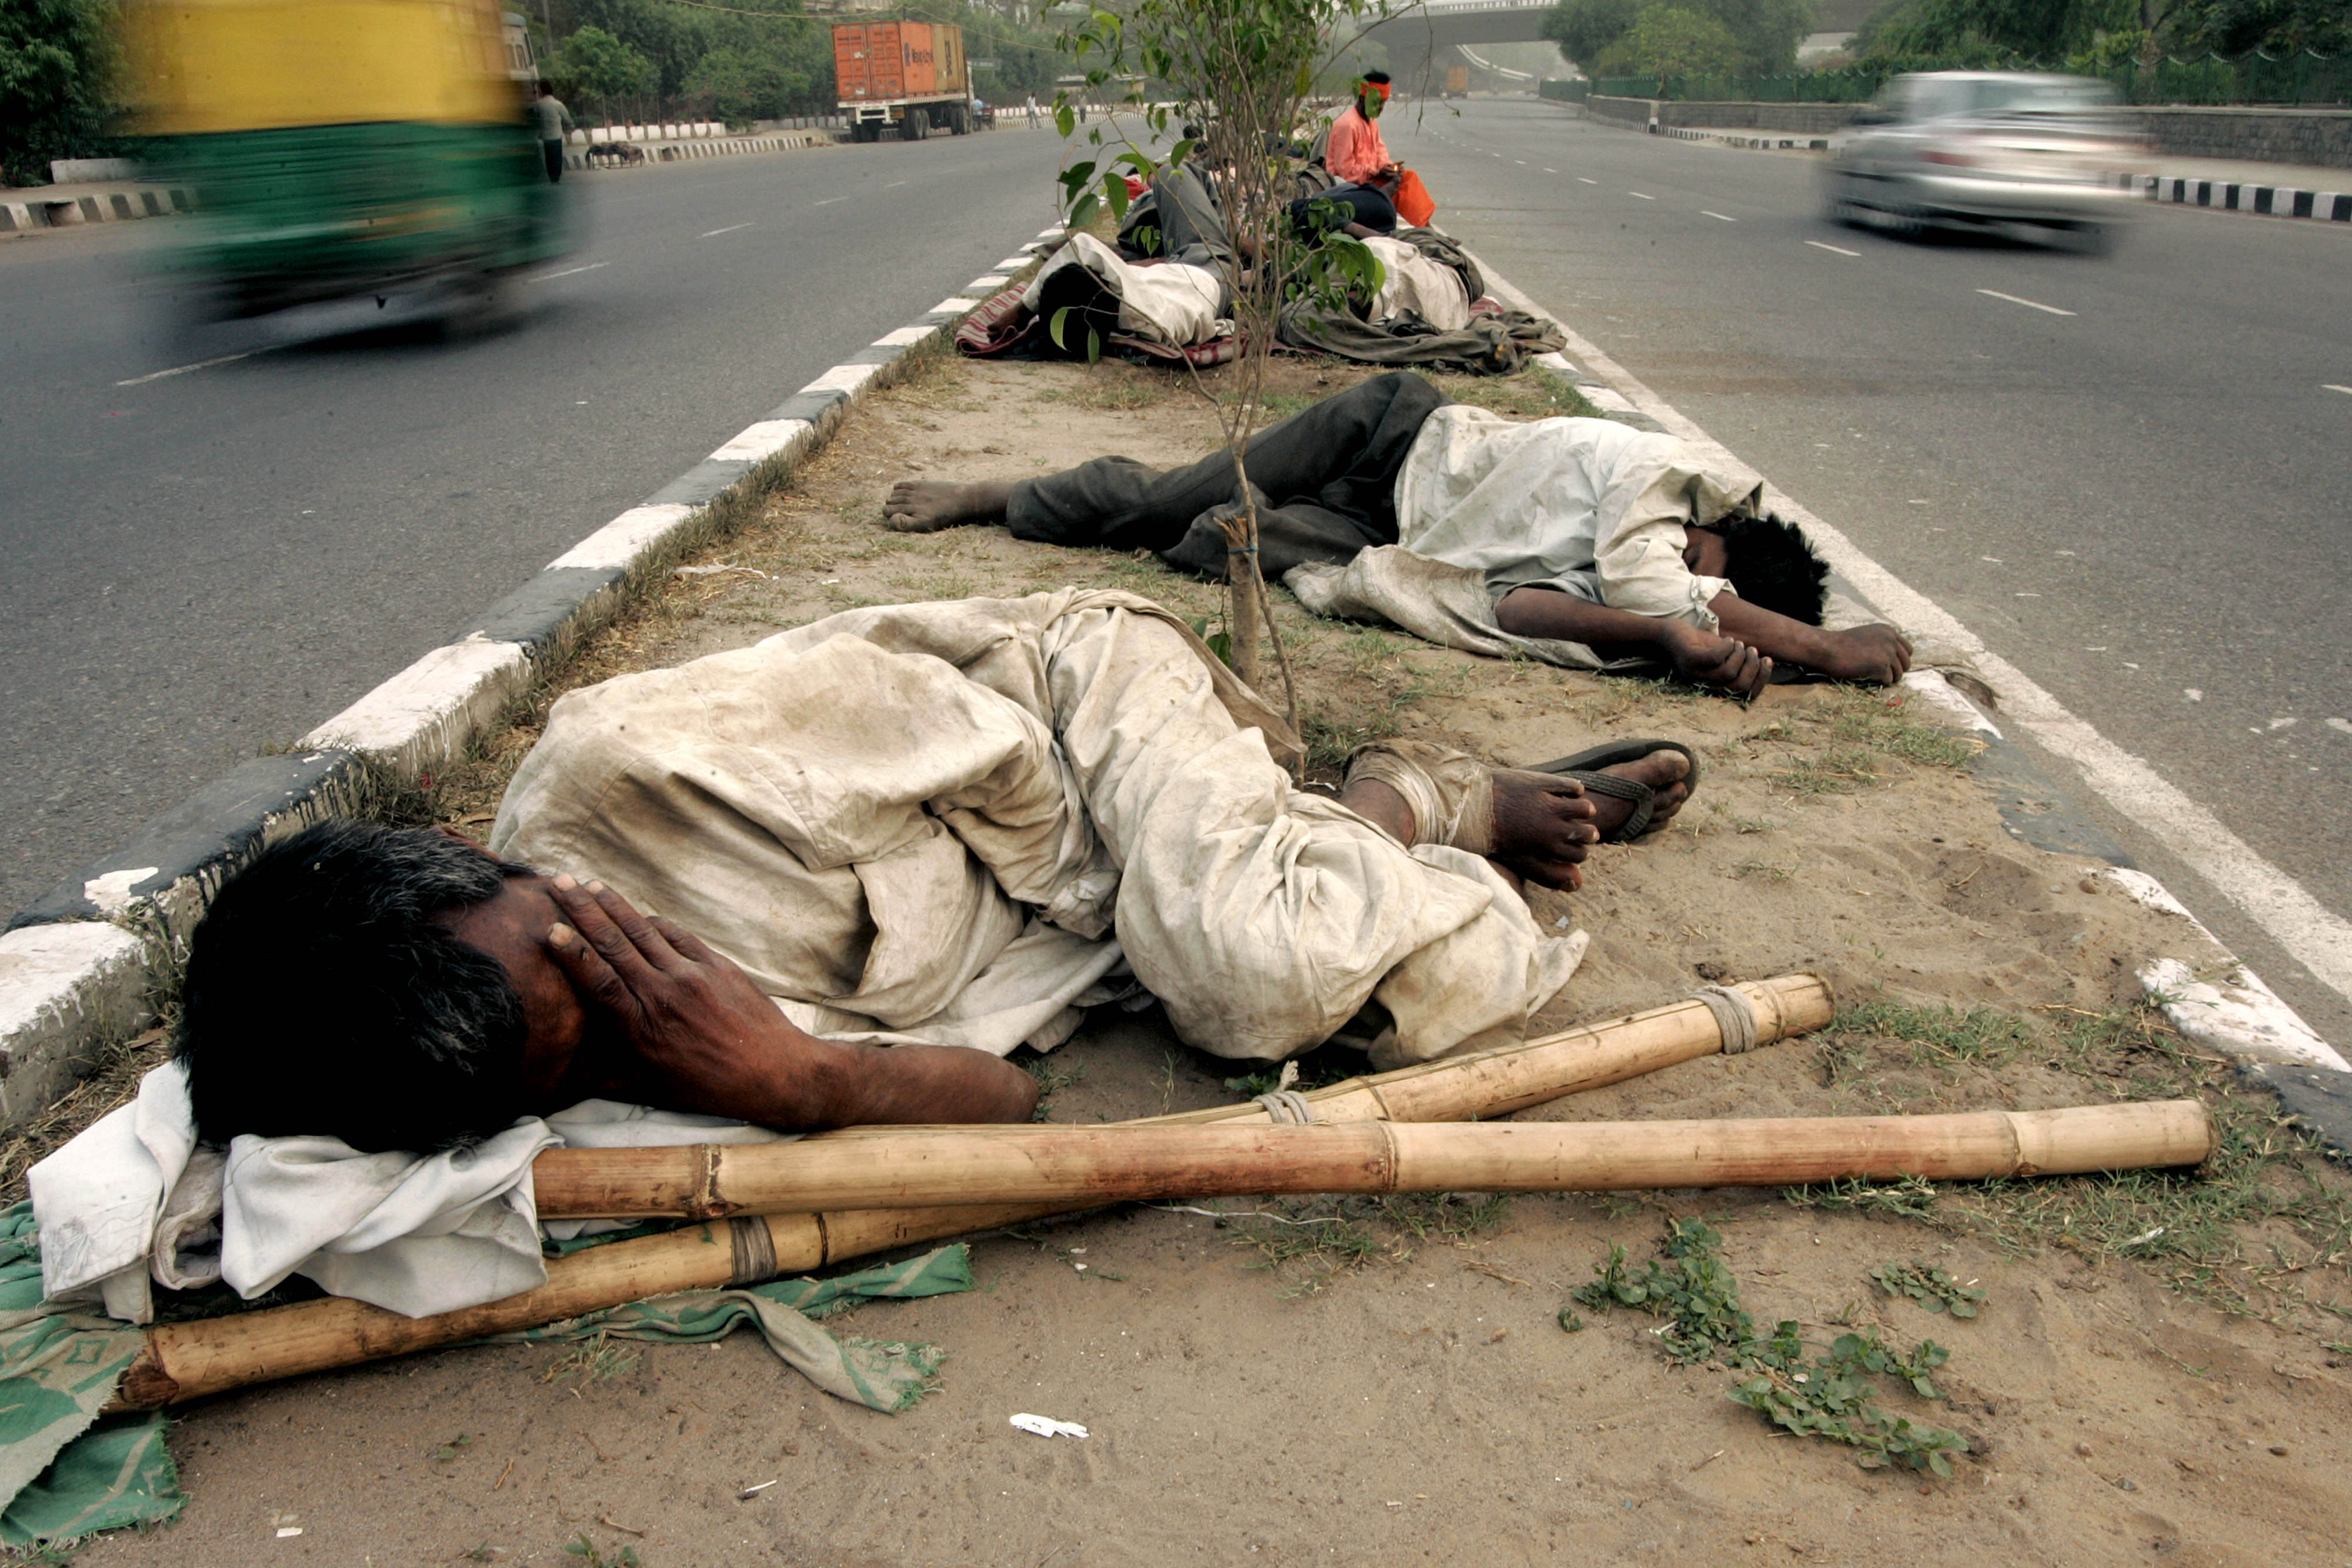 Homeless Indians sleep on a pavement of New Delhi, April 26, 2006. Global poverty rates have fallen by as much as 10 percent over the past five years with the biggest declines in India and China, which account for about one in three people in the world, the World Bank said.   REUTERS/Kamal Kishore - RTR1CT65